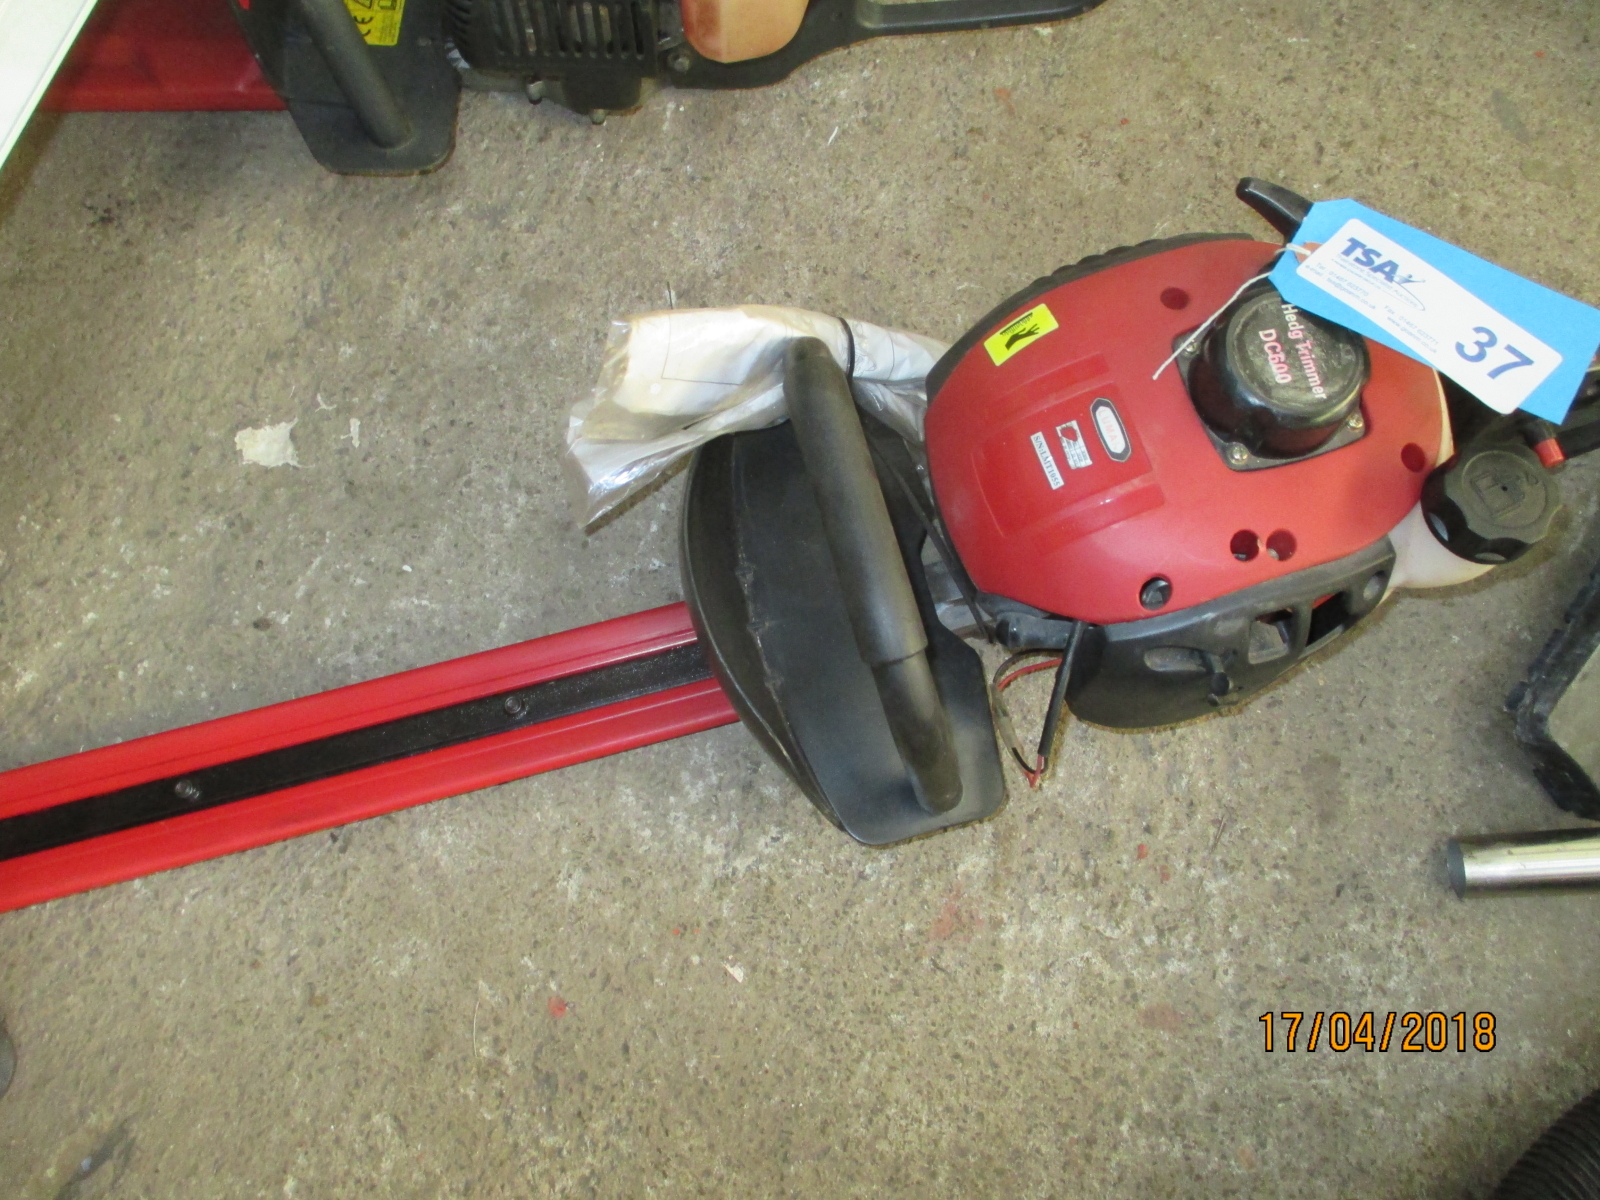 Lot 37 - 1 No. Luman DC600 Petrol Hedge Trimmer